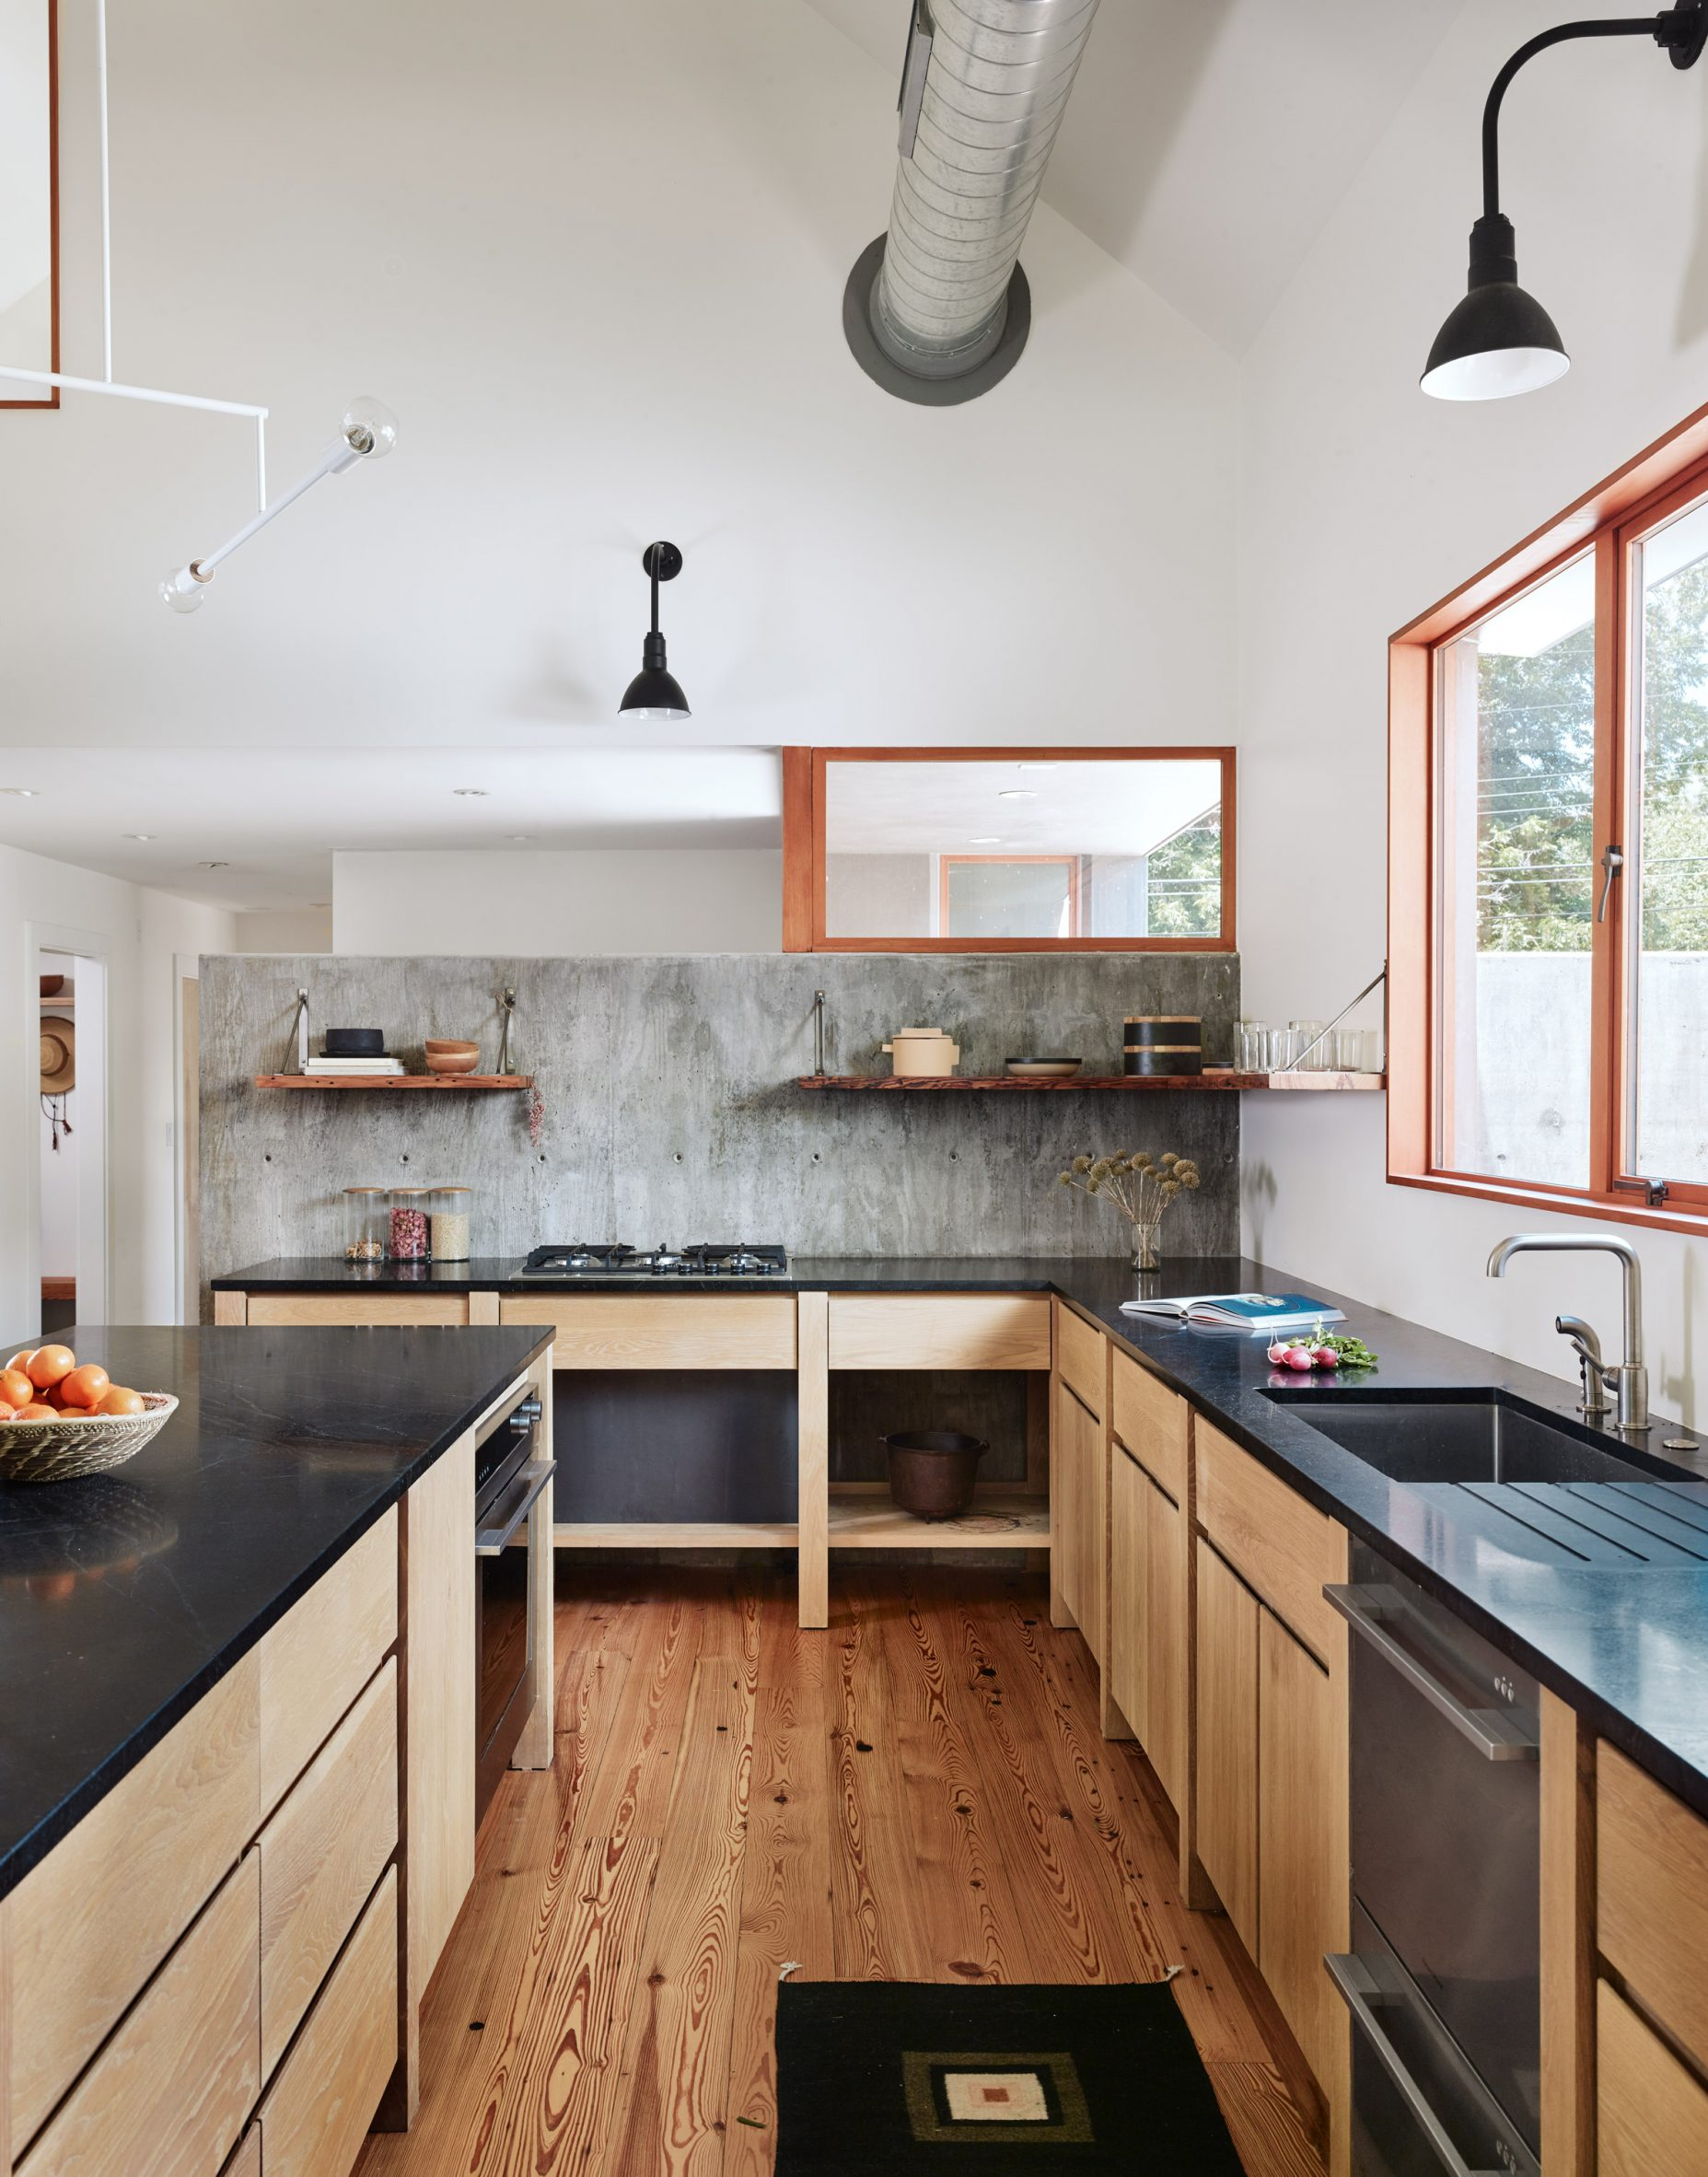 The kitchen is open-plan